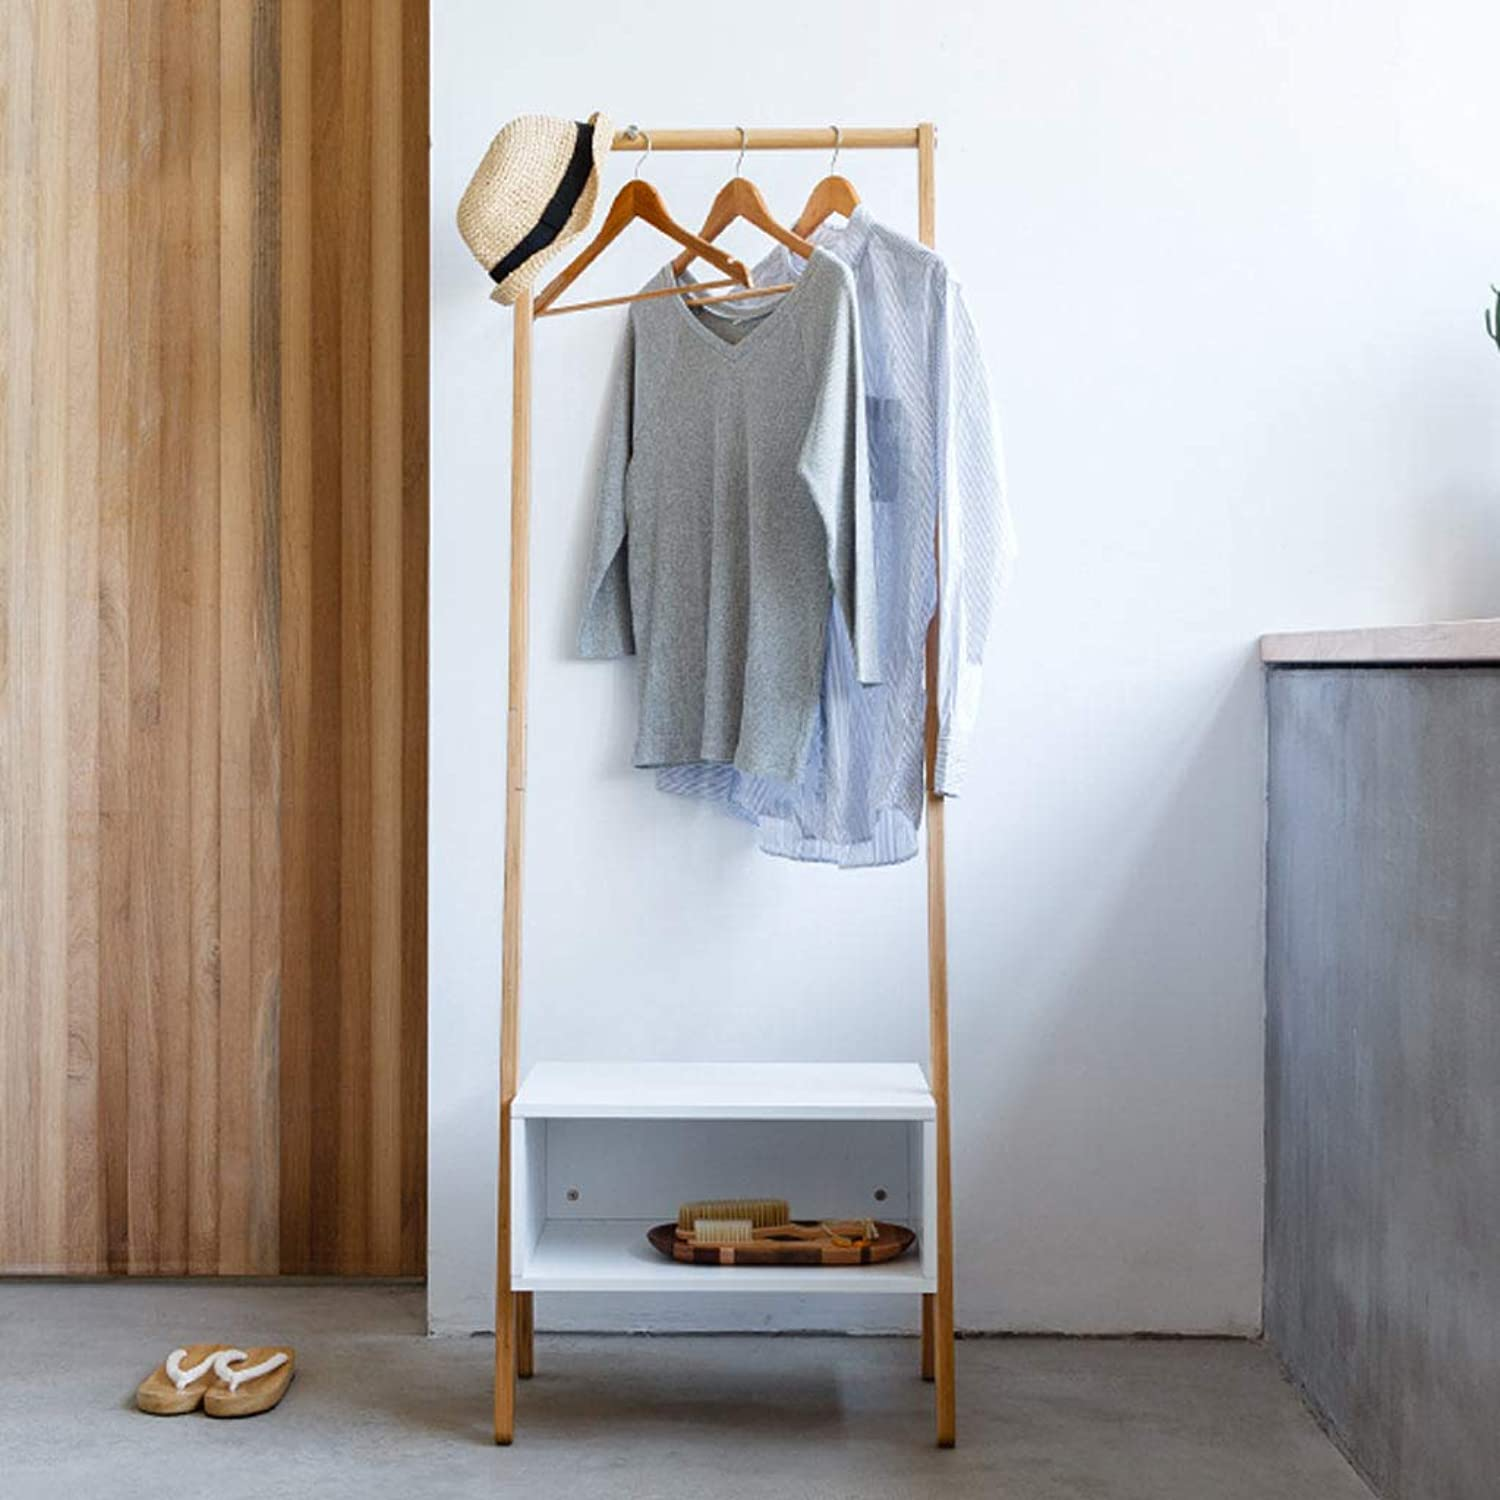 JTWJ Creative Bedroom Floor Coat Rack Living Room Porch Hanger Storage Changeable shoes Bench Coat Rack